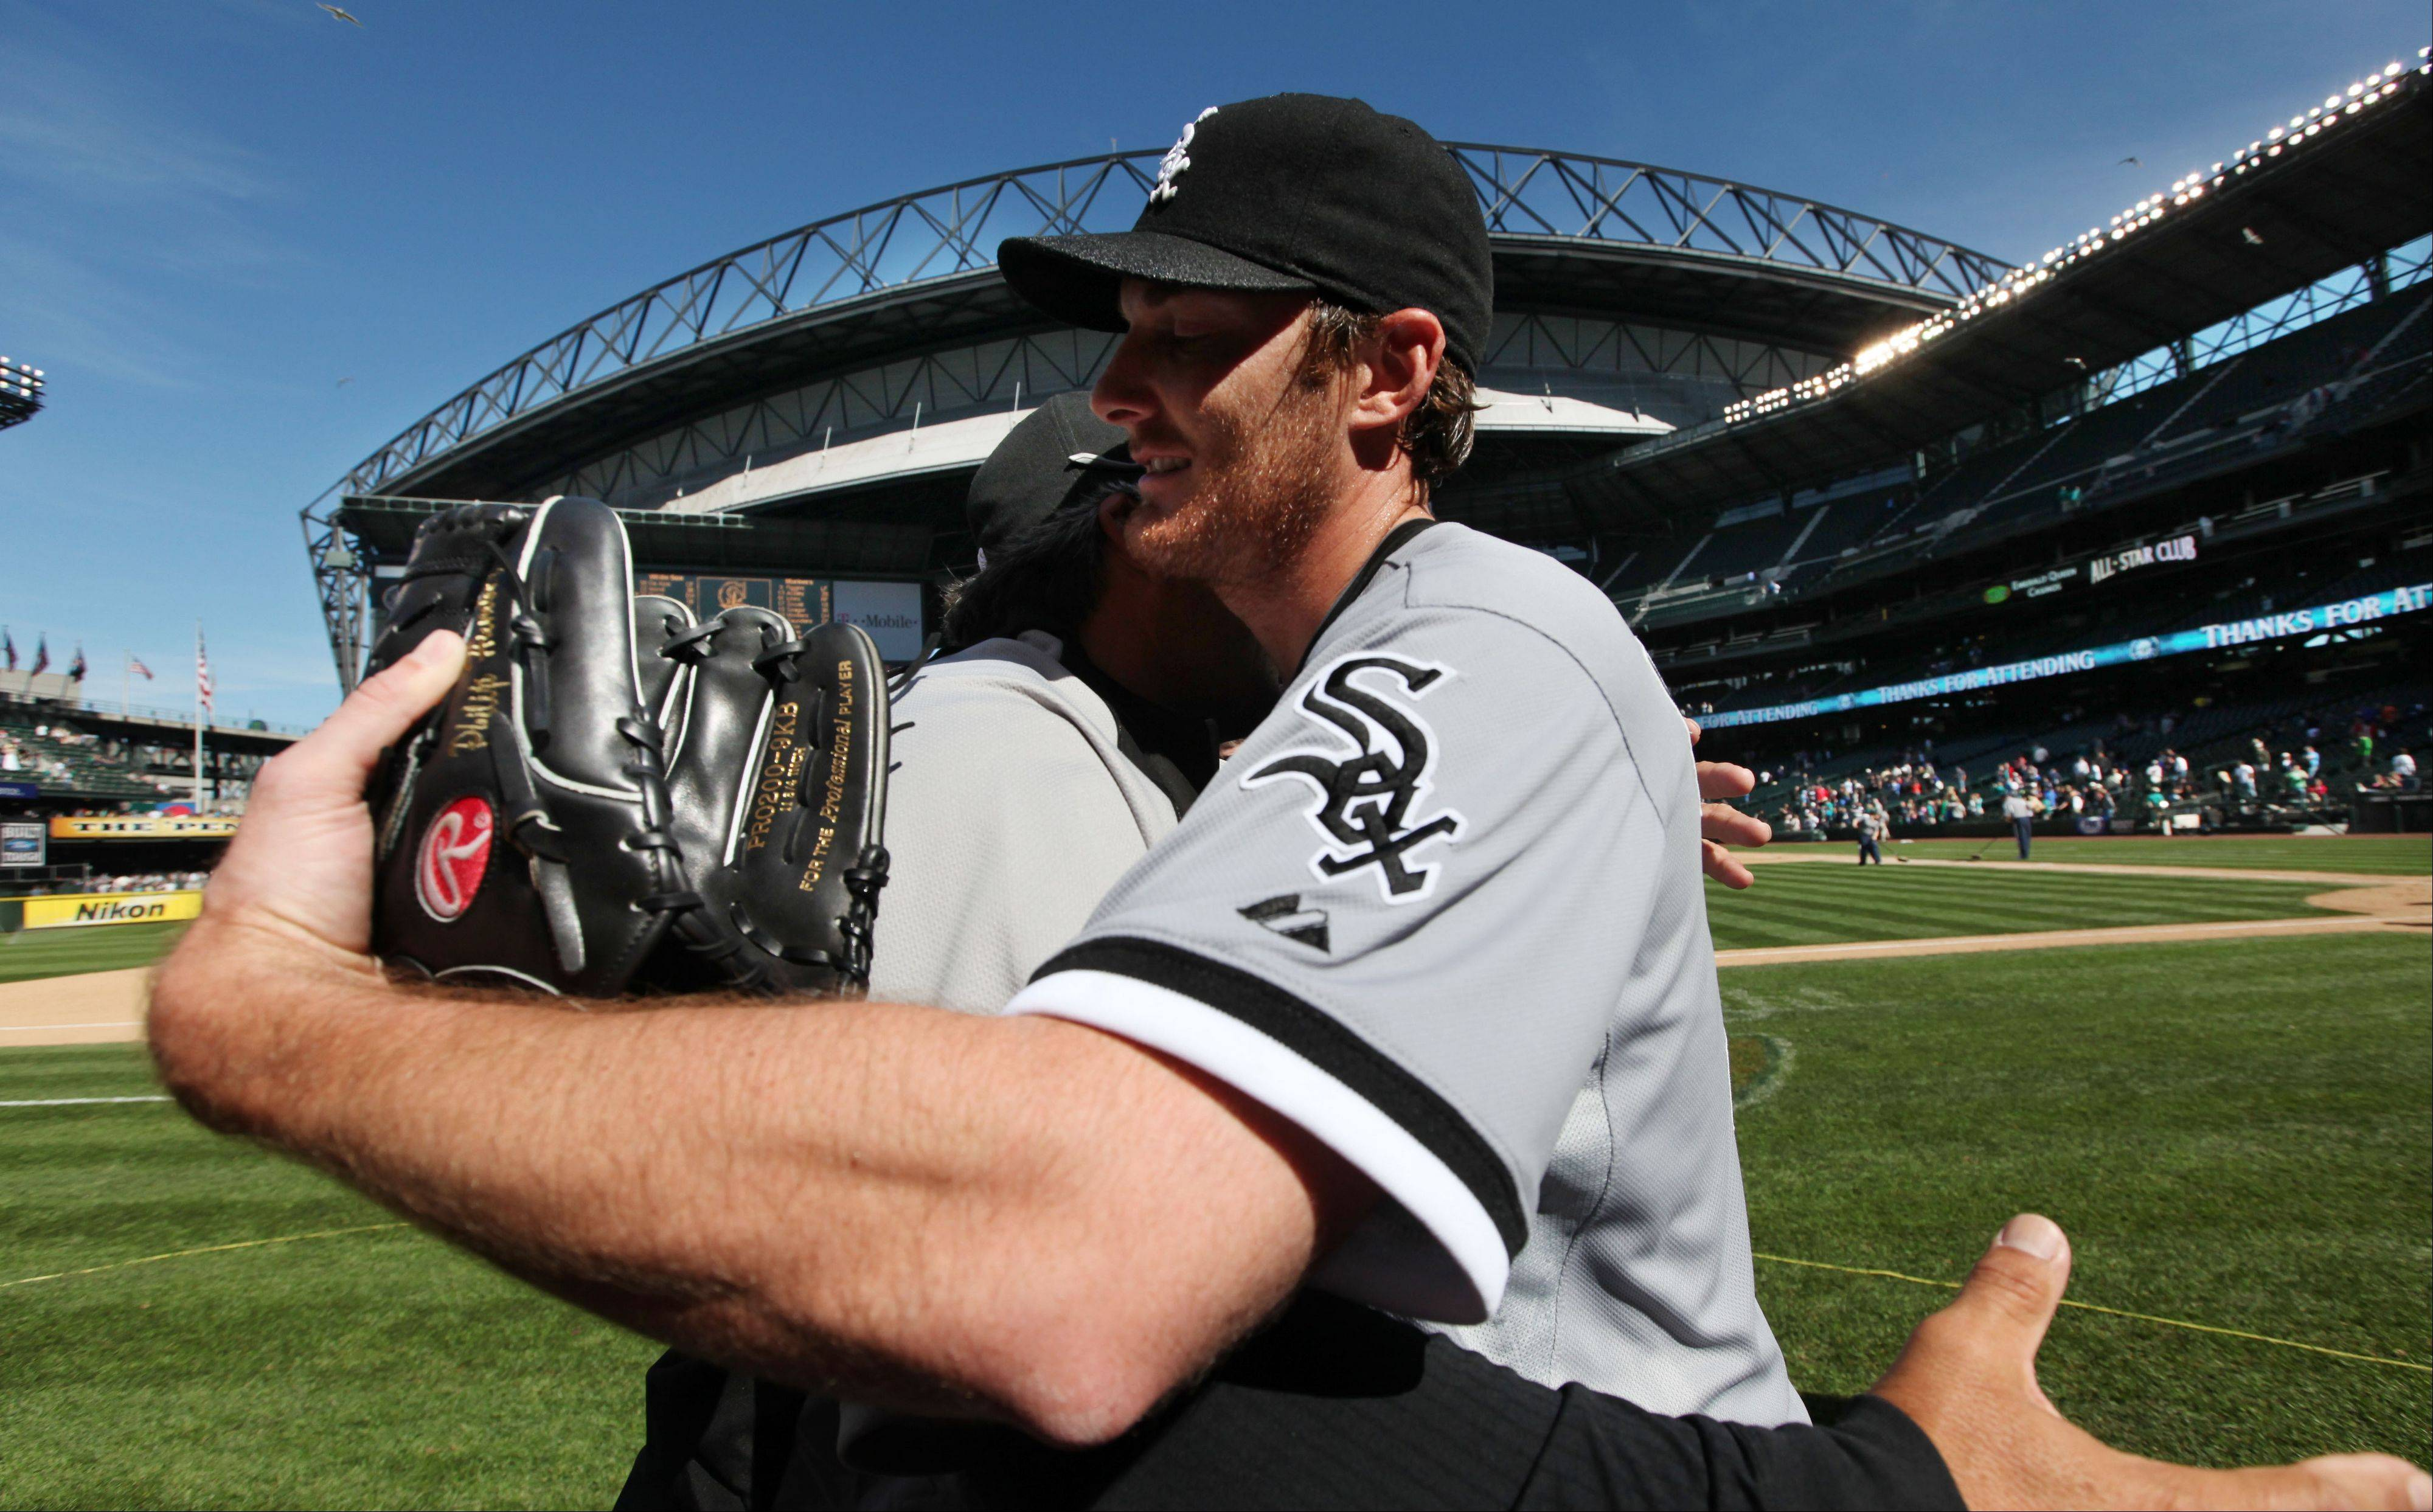 White Sox starting pitcher Phil Humber, right, is hugged Saturday after pitching a perfect game.